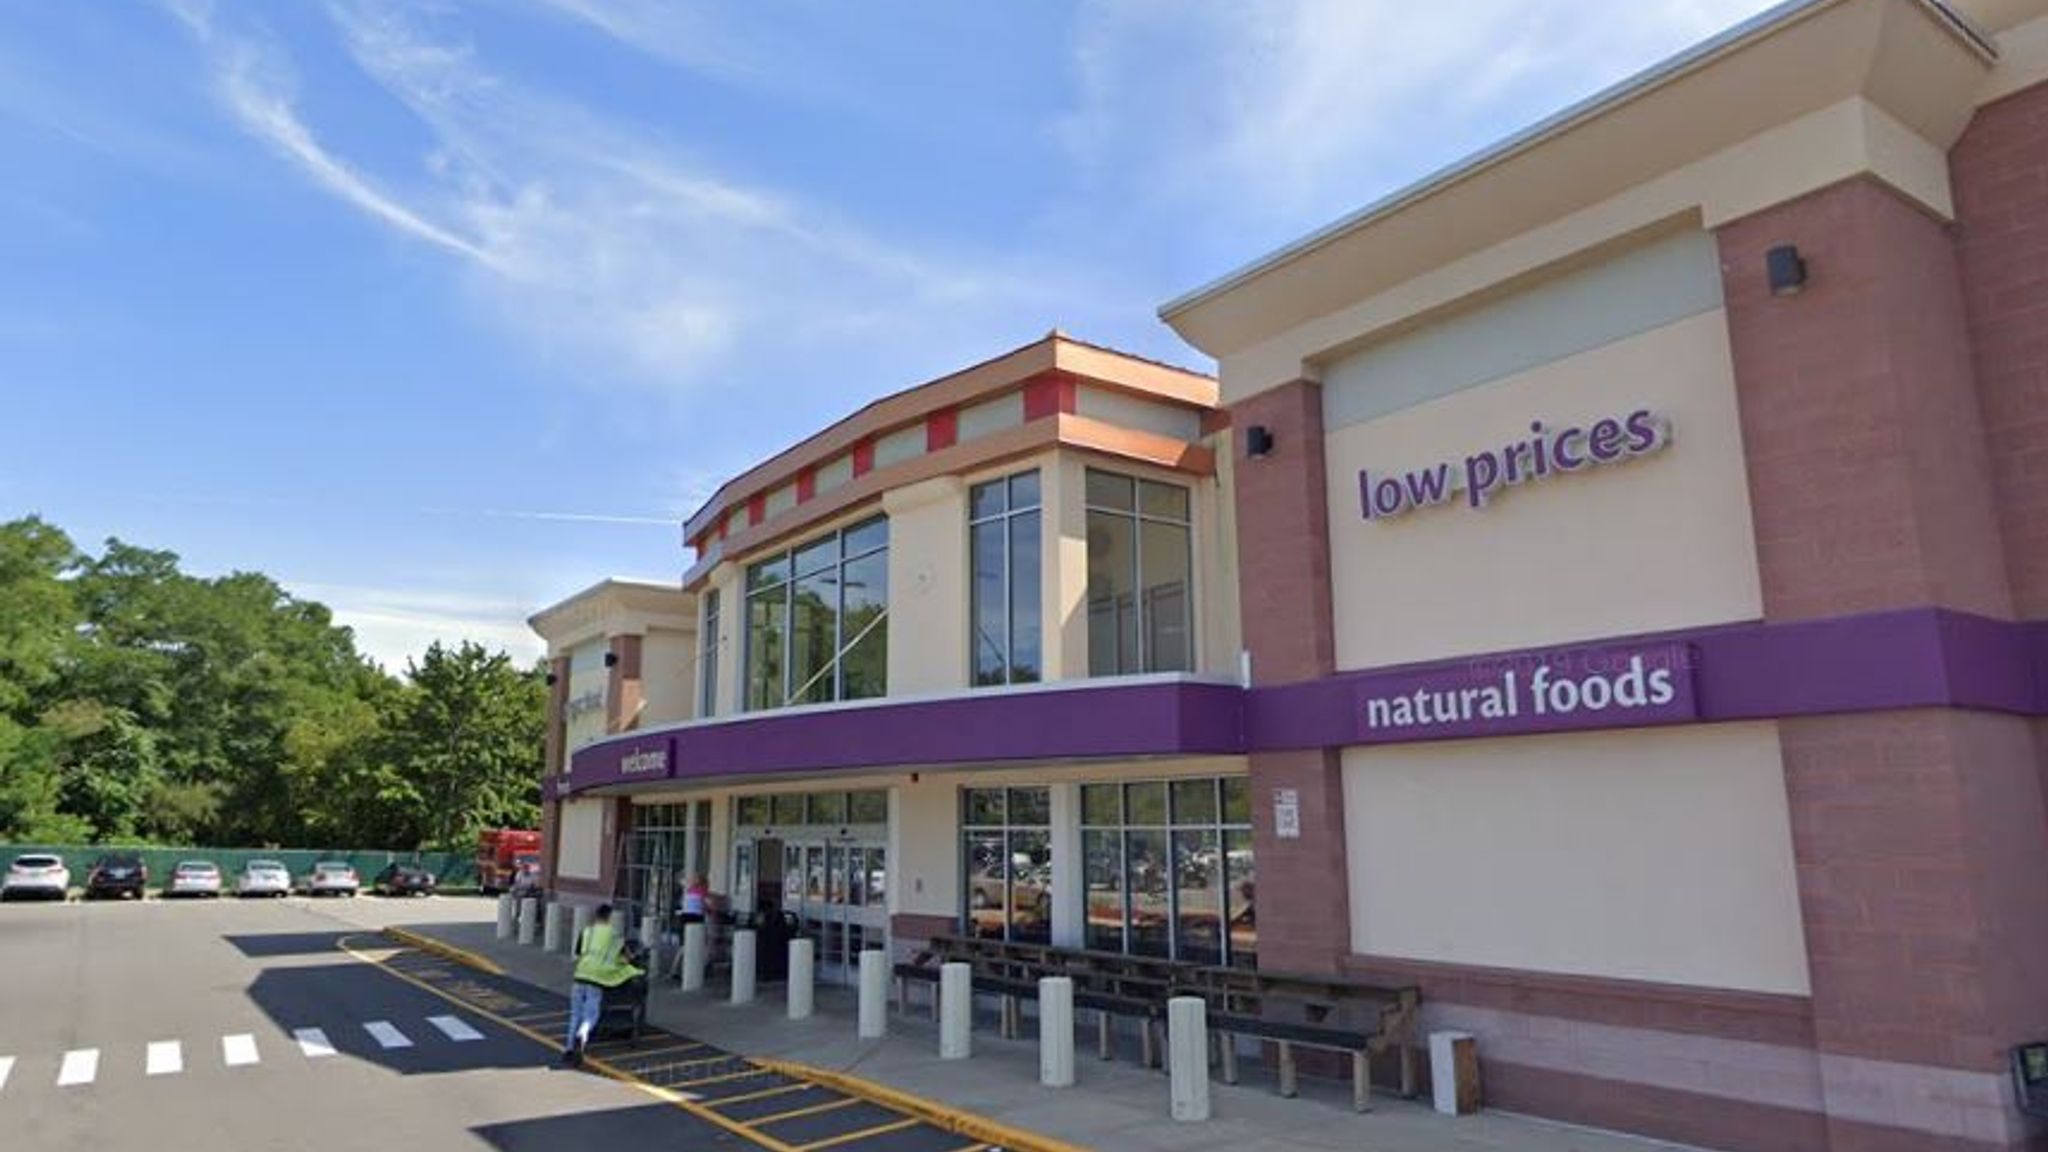 The women were caught failing to scan every item at the self-checkout at a Stop & Shop in Somerset, Massachusetts. Pic: Google Streetview